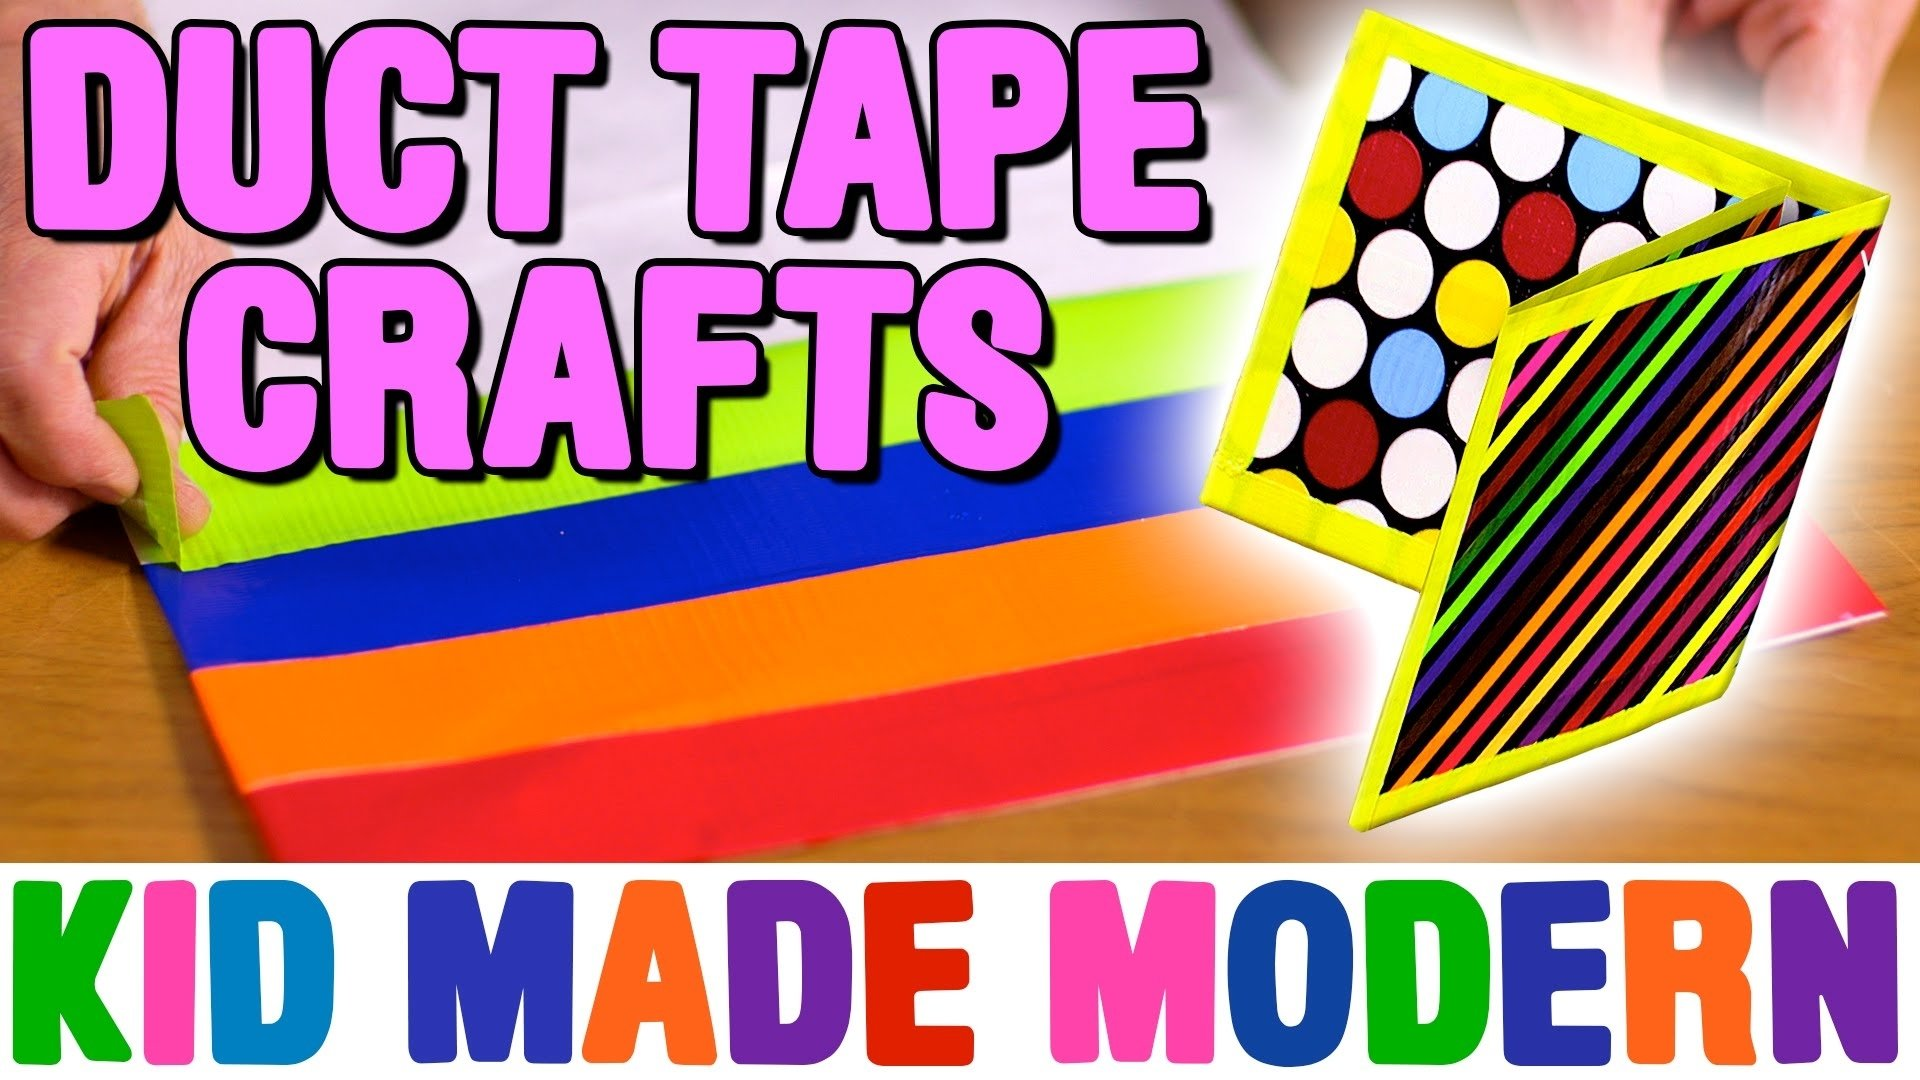 10 Spectacular Duct Tape Ideas For Kids duct tape crafts how to make fun wallets bags with todd oldham 2020